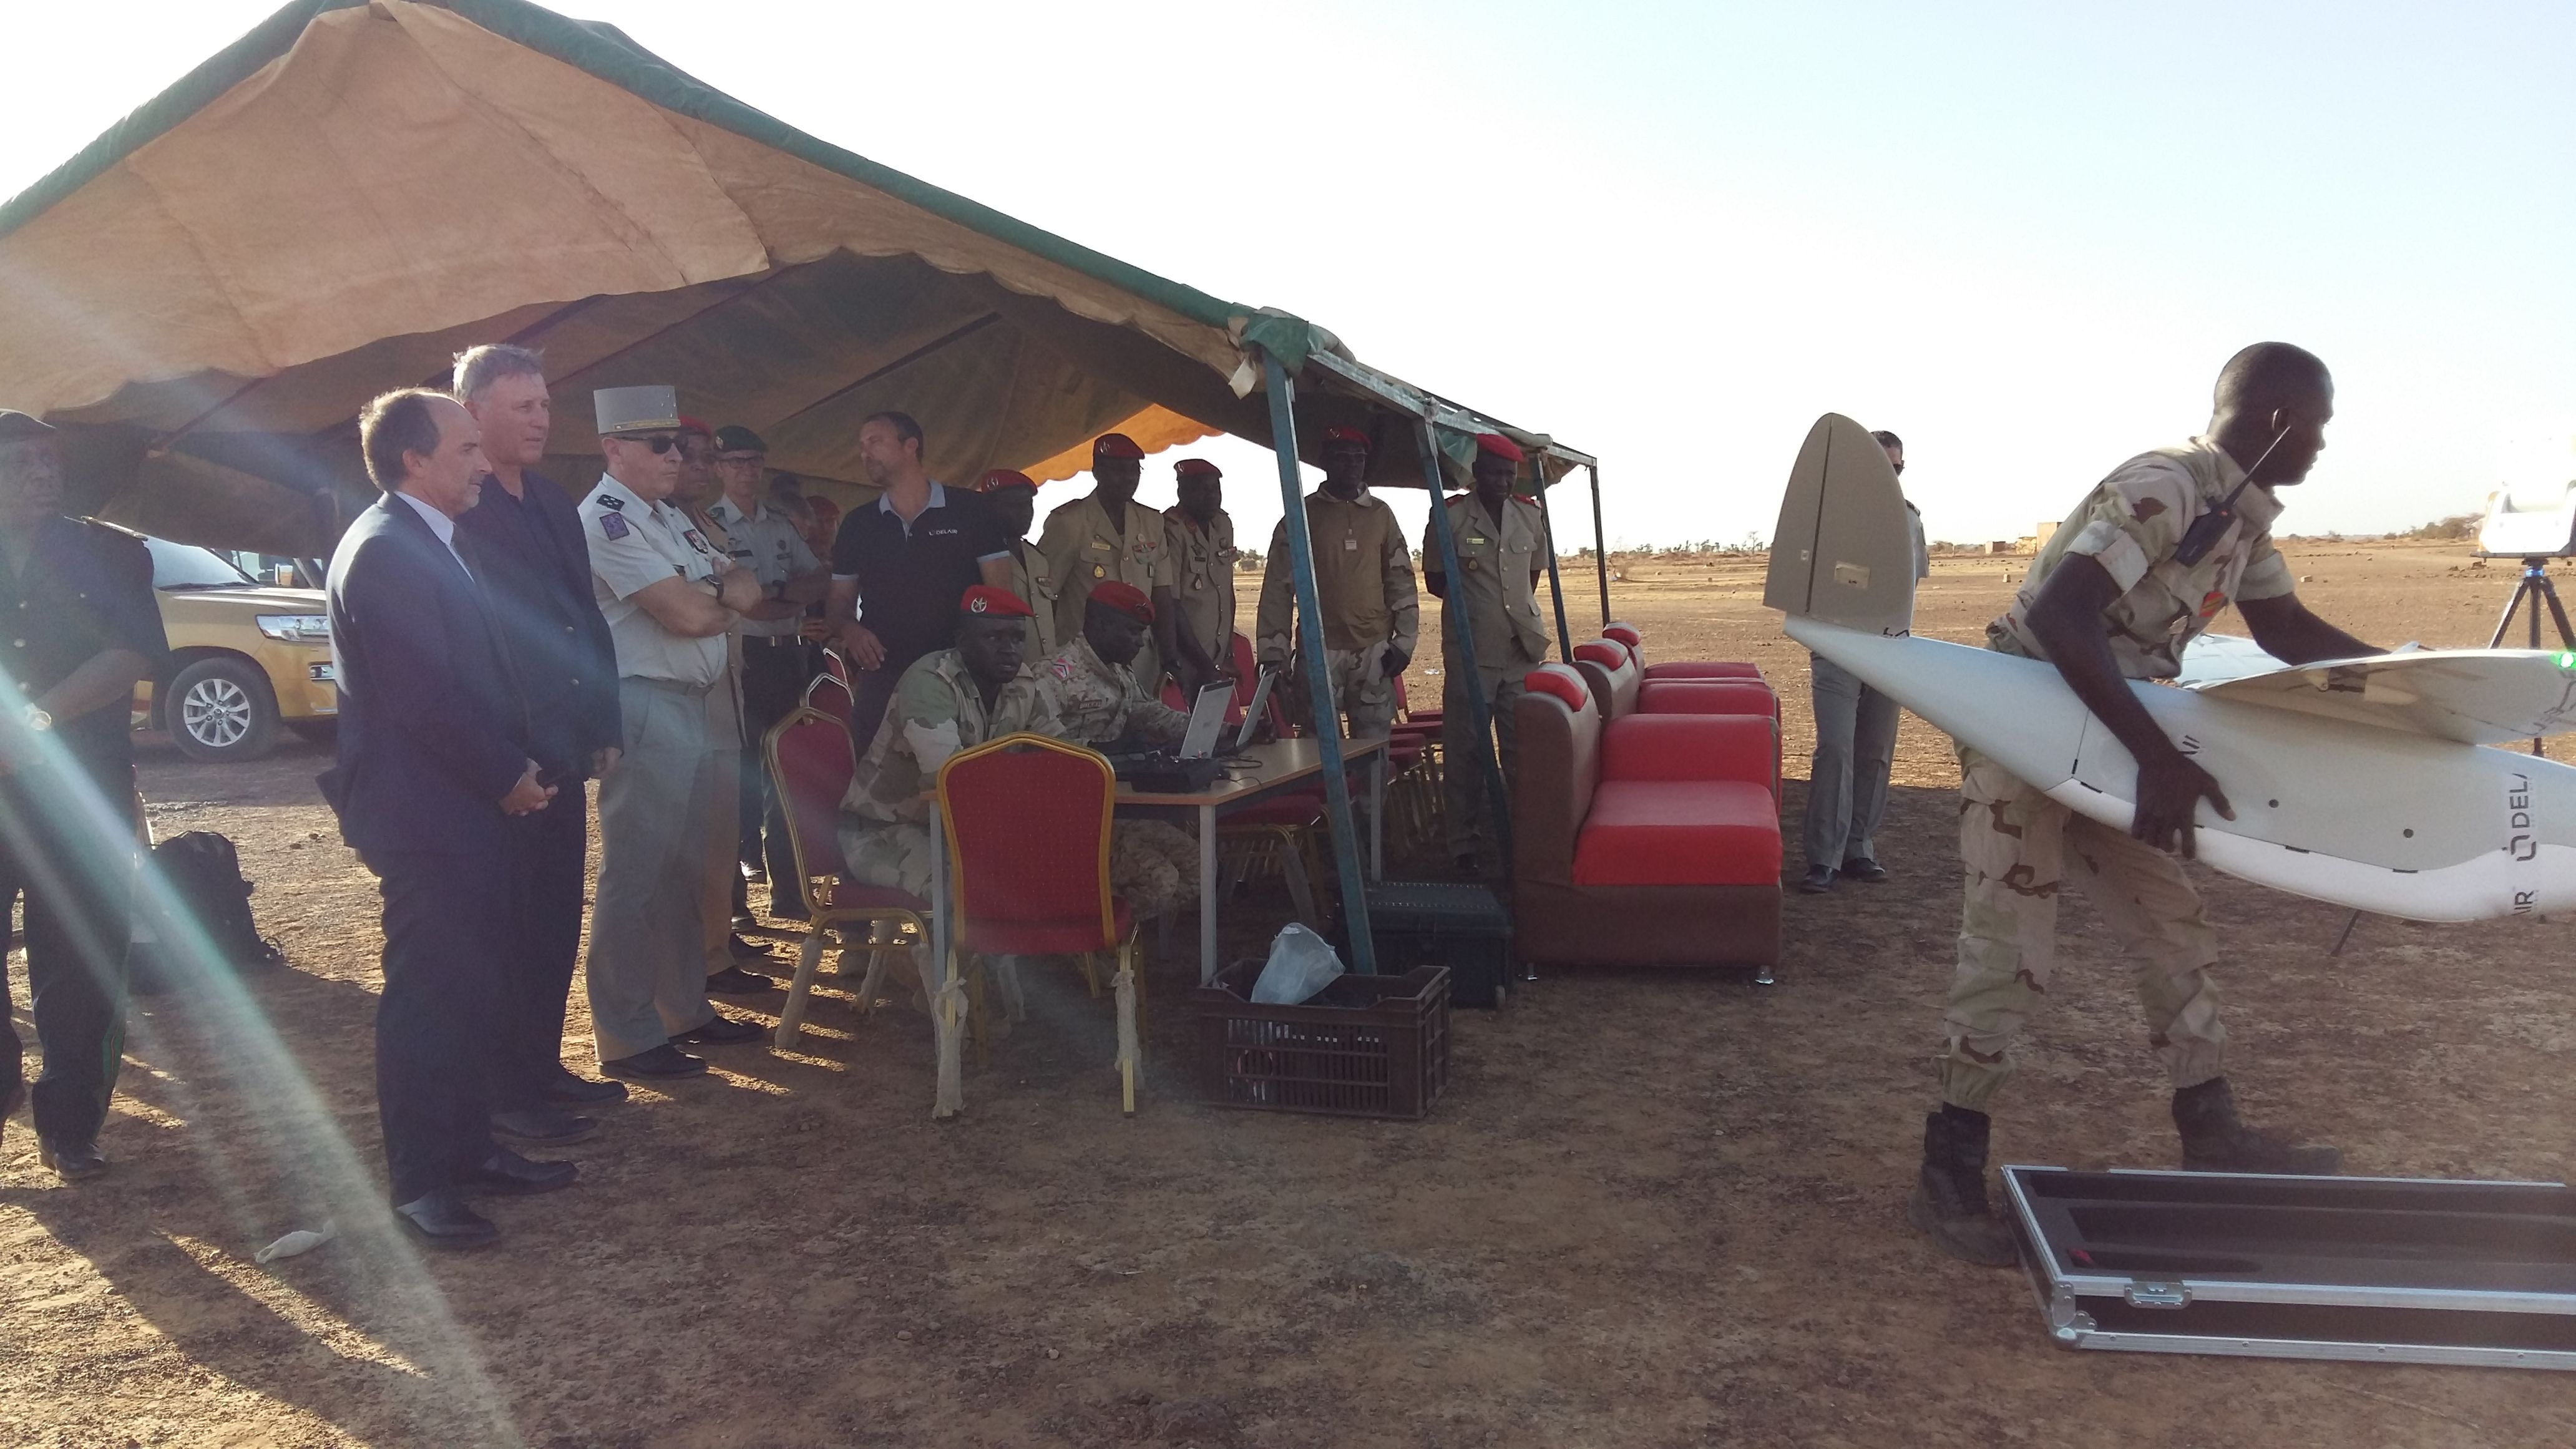 DT26X Surveillance long range surveillance drones to better address counter terrorism in Niger